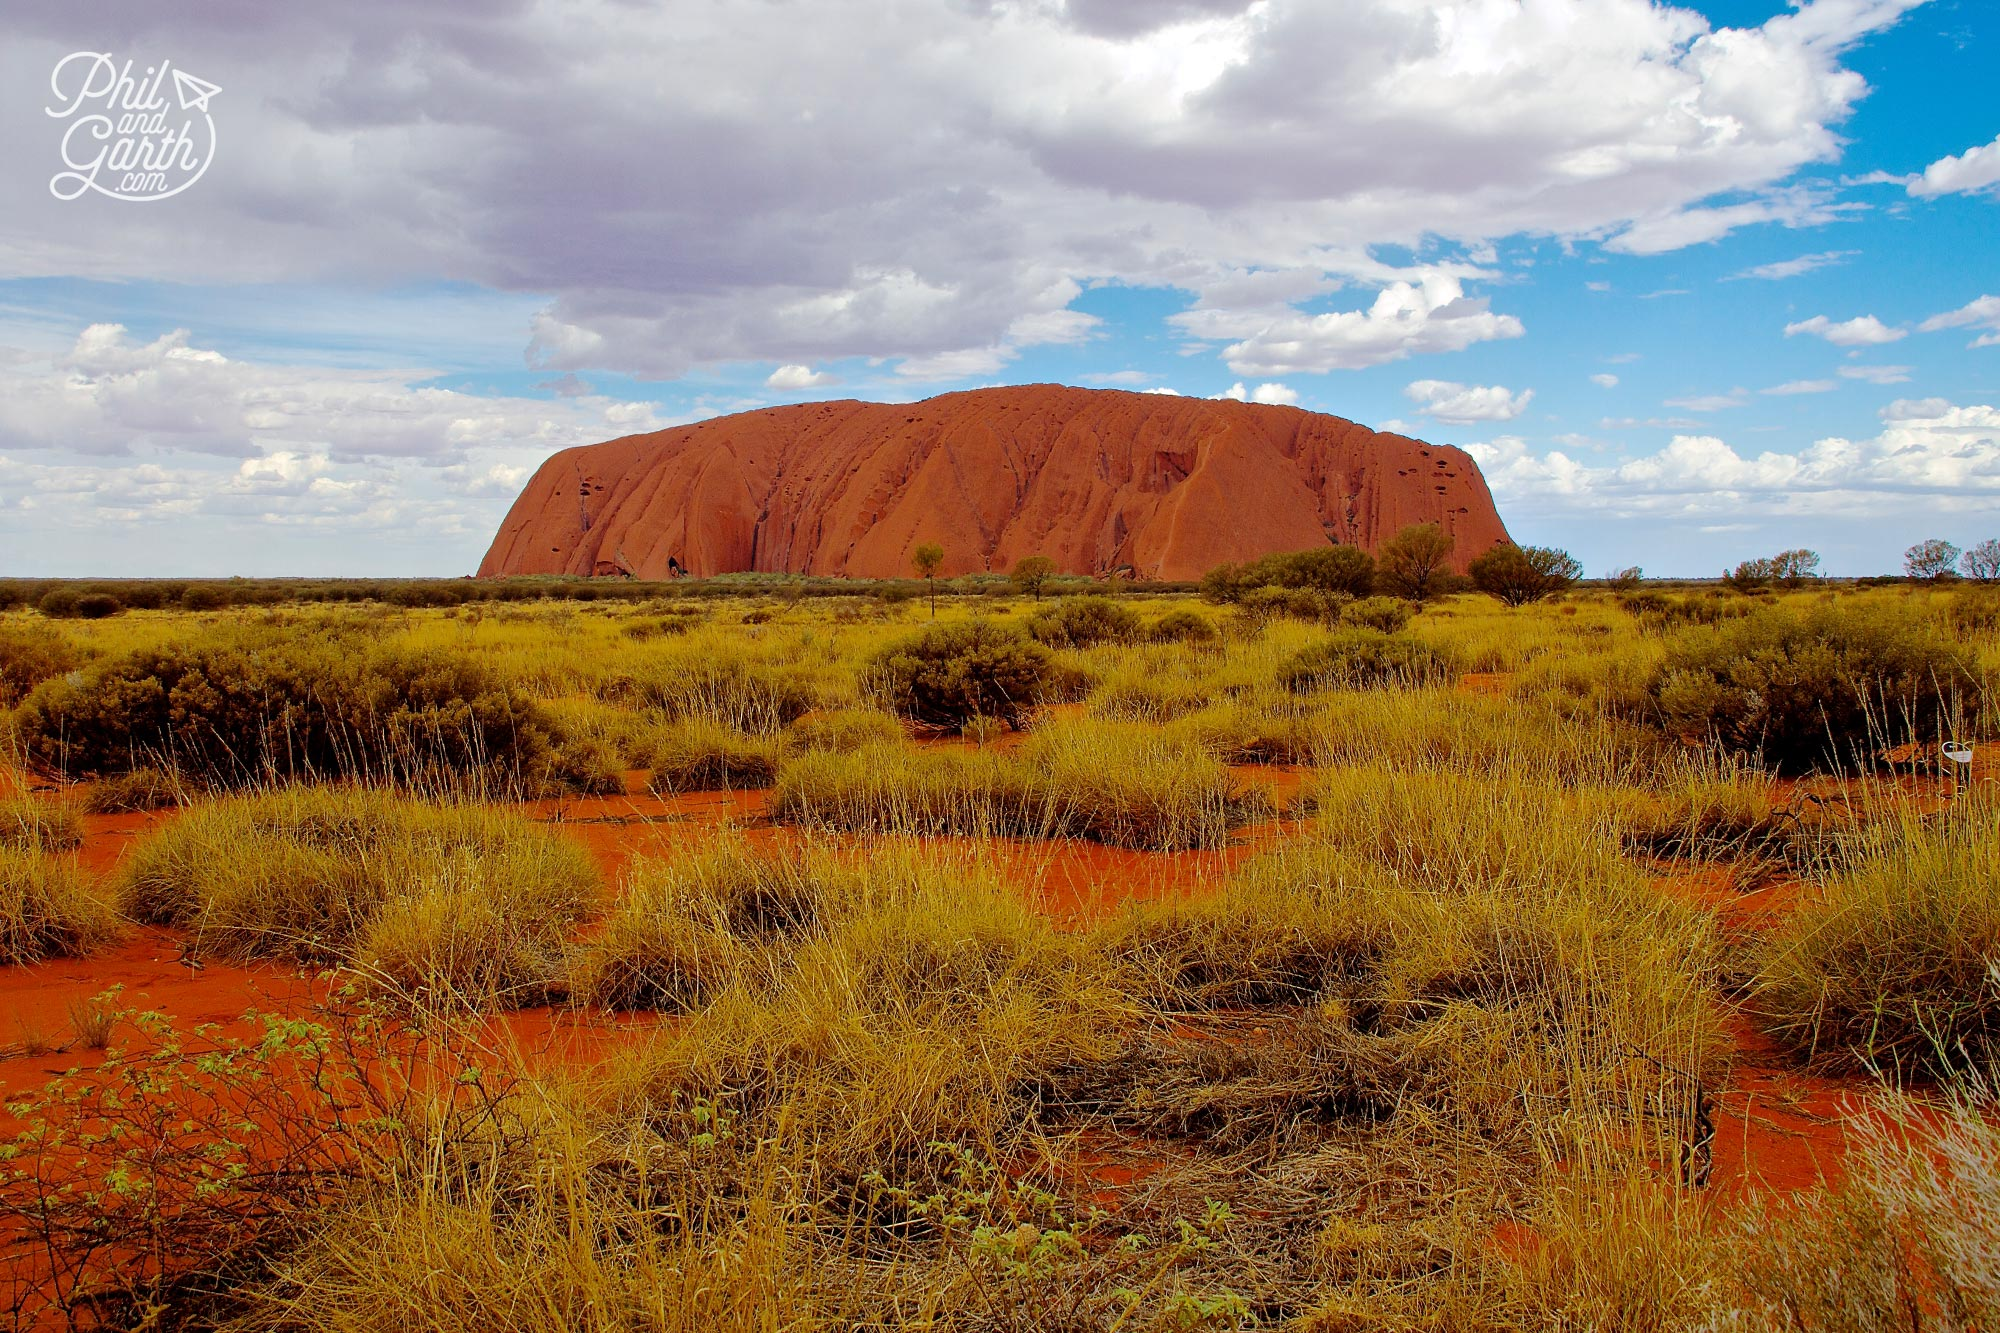 Day 1 of our Uluru itinerary and we start with a fabulous view of Uluru